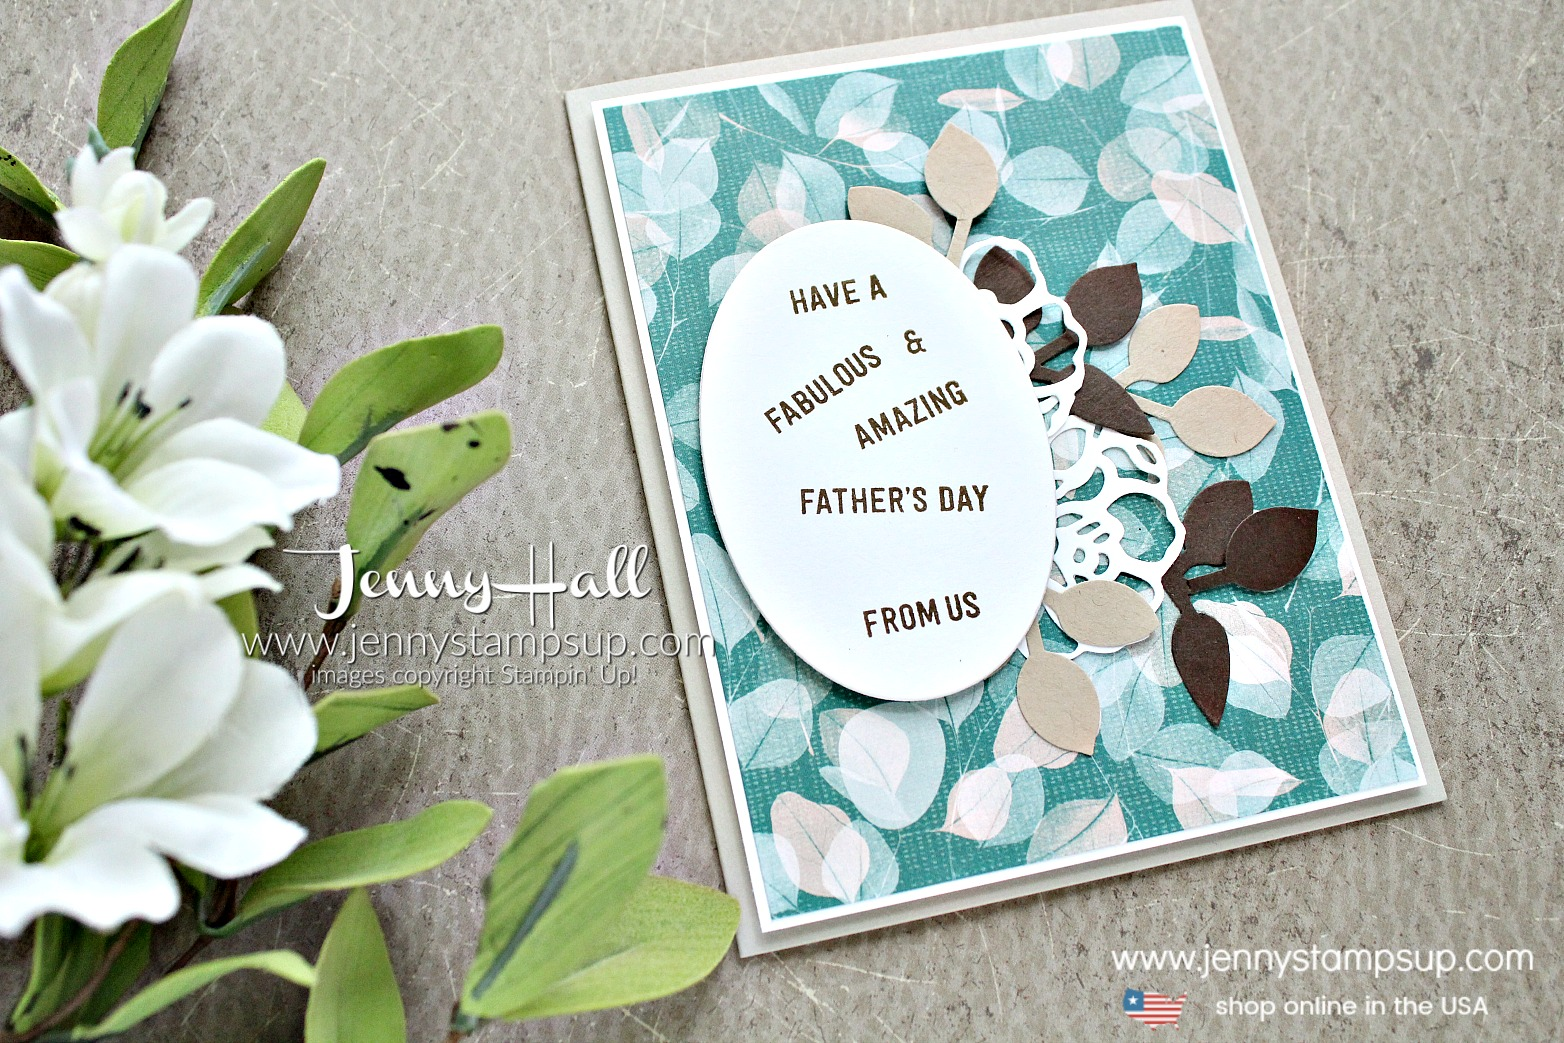 Father's Day card from us created by Jenny Hall at www.jennyhalldesign.com for #fathersdaycard #masculinecard #cardfromus #jennyhall #jennyhalldesign #jennystampsup #naturespoemdsp #stamping #suochallenge